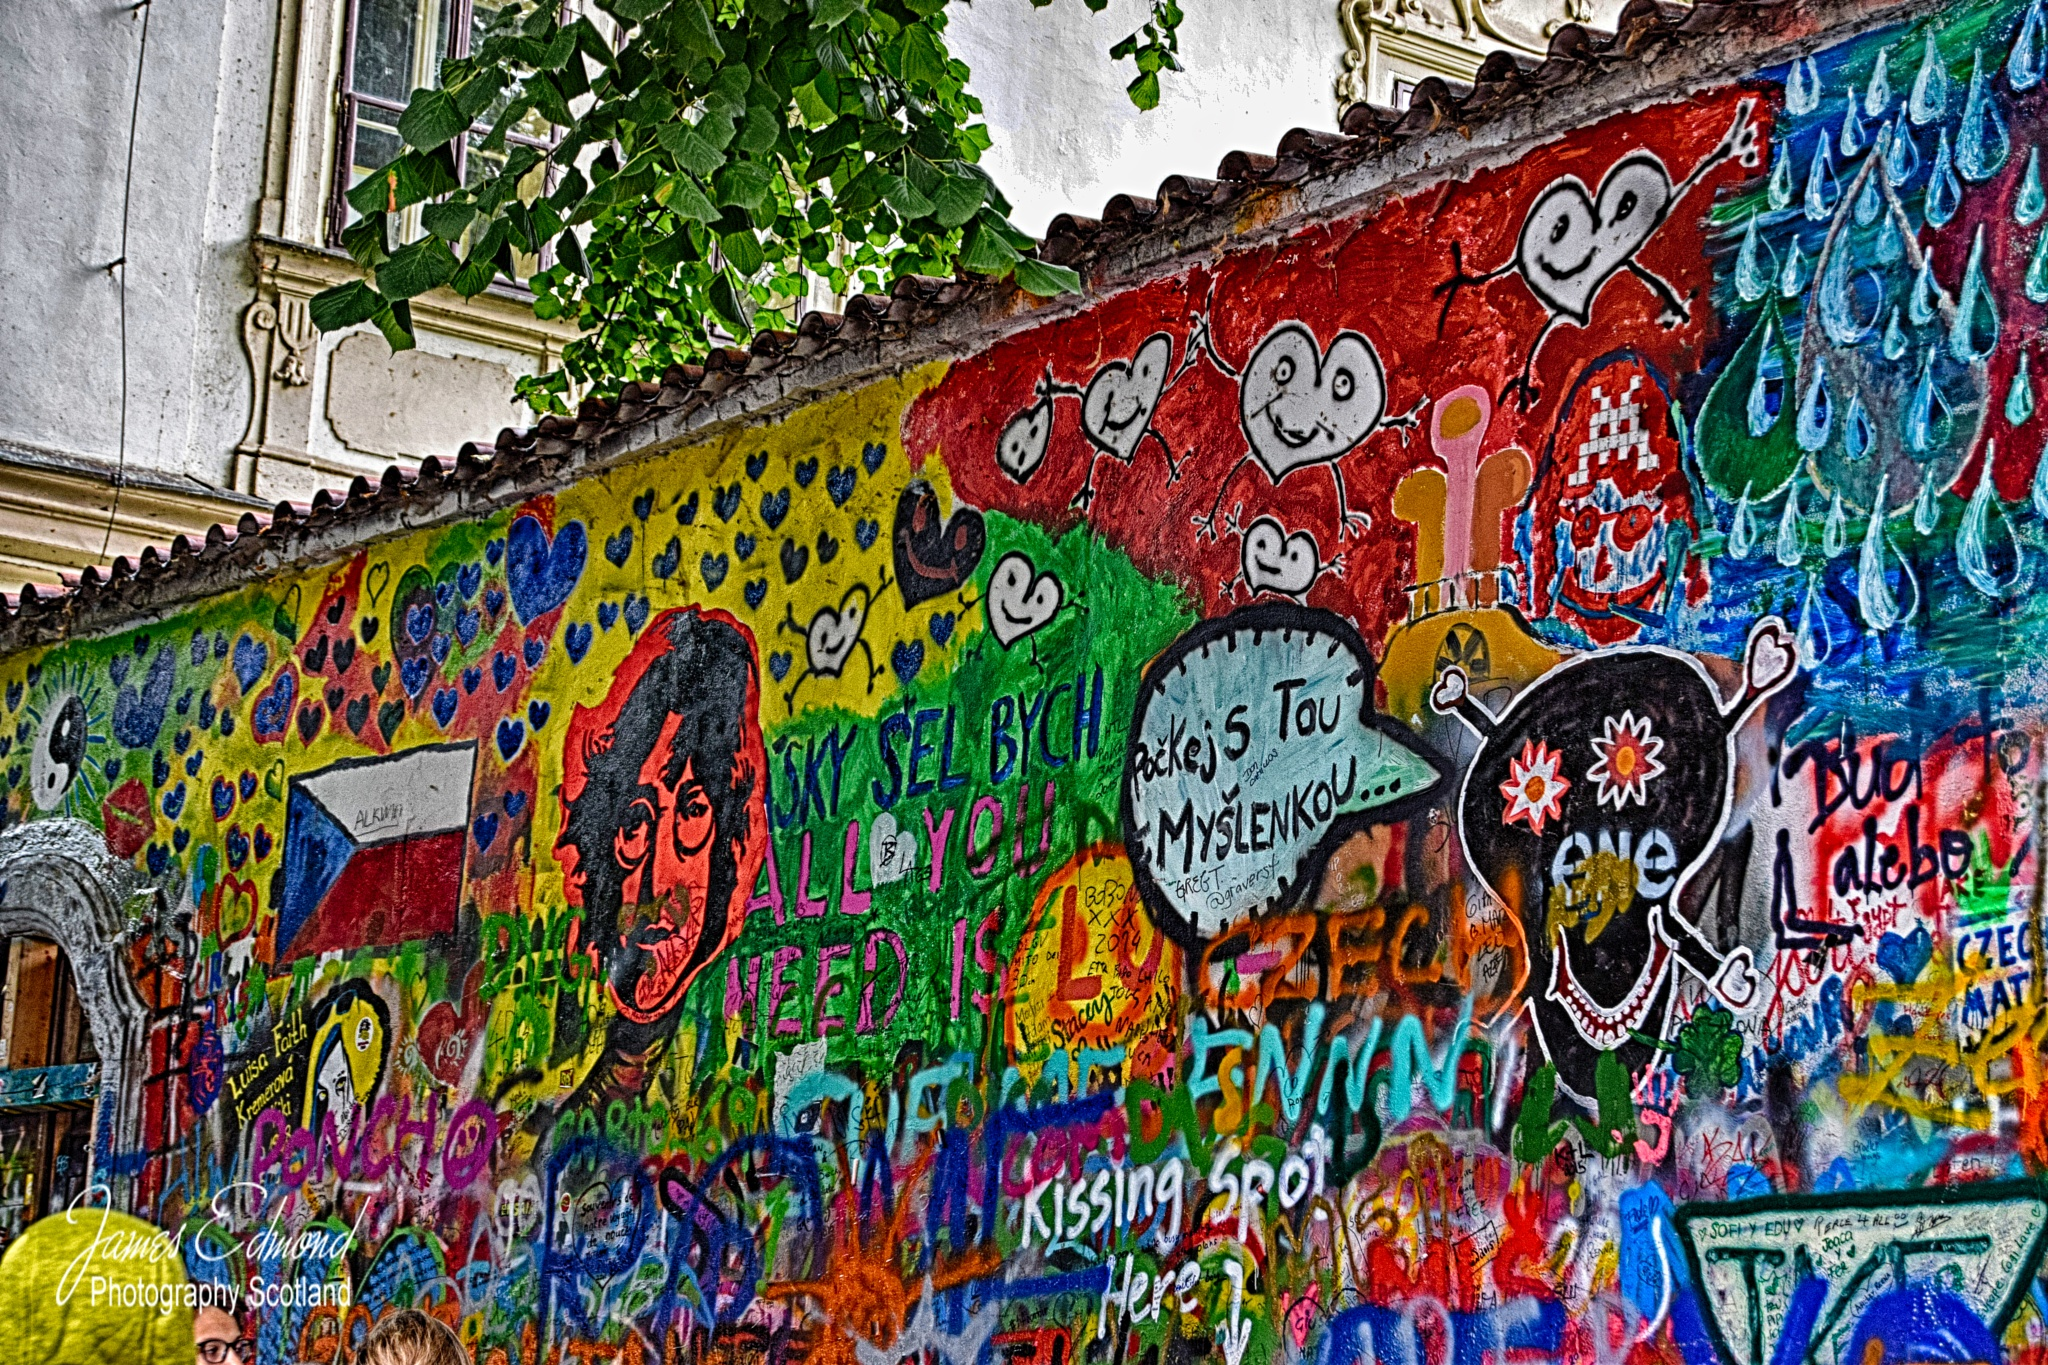 John Lennon Wall, Prague, Czech Republic by James Edmond Photography